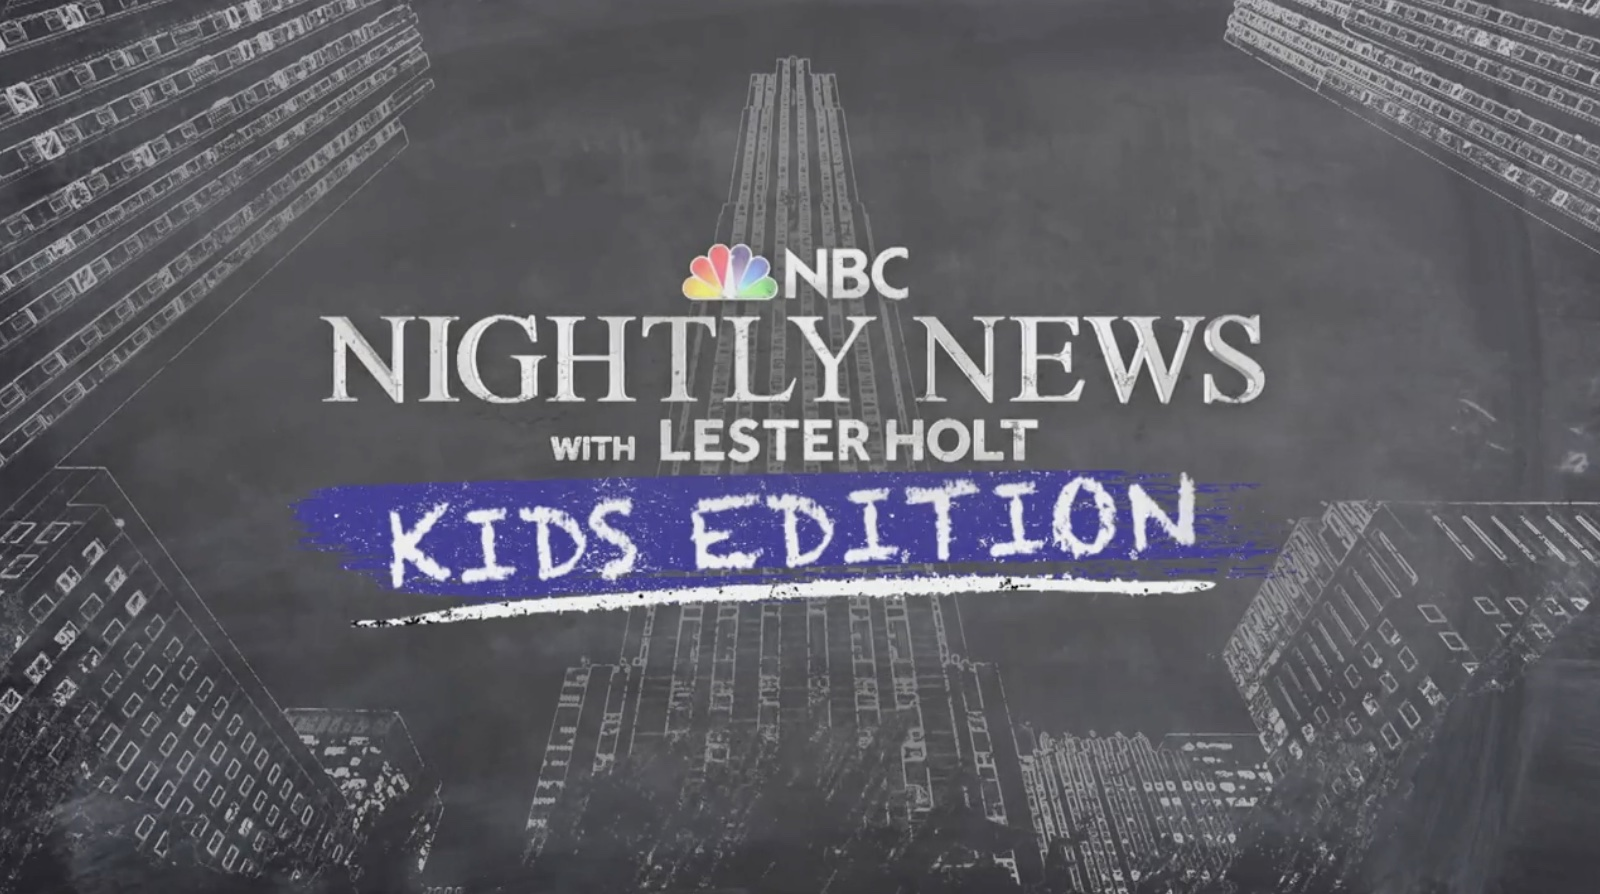 Great news podcasts for kids: NBC Nightly News with Lester Holt, Kids Edition